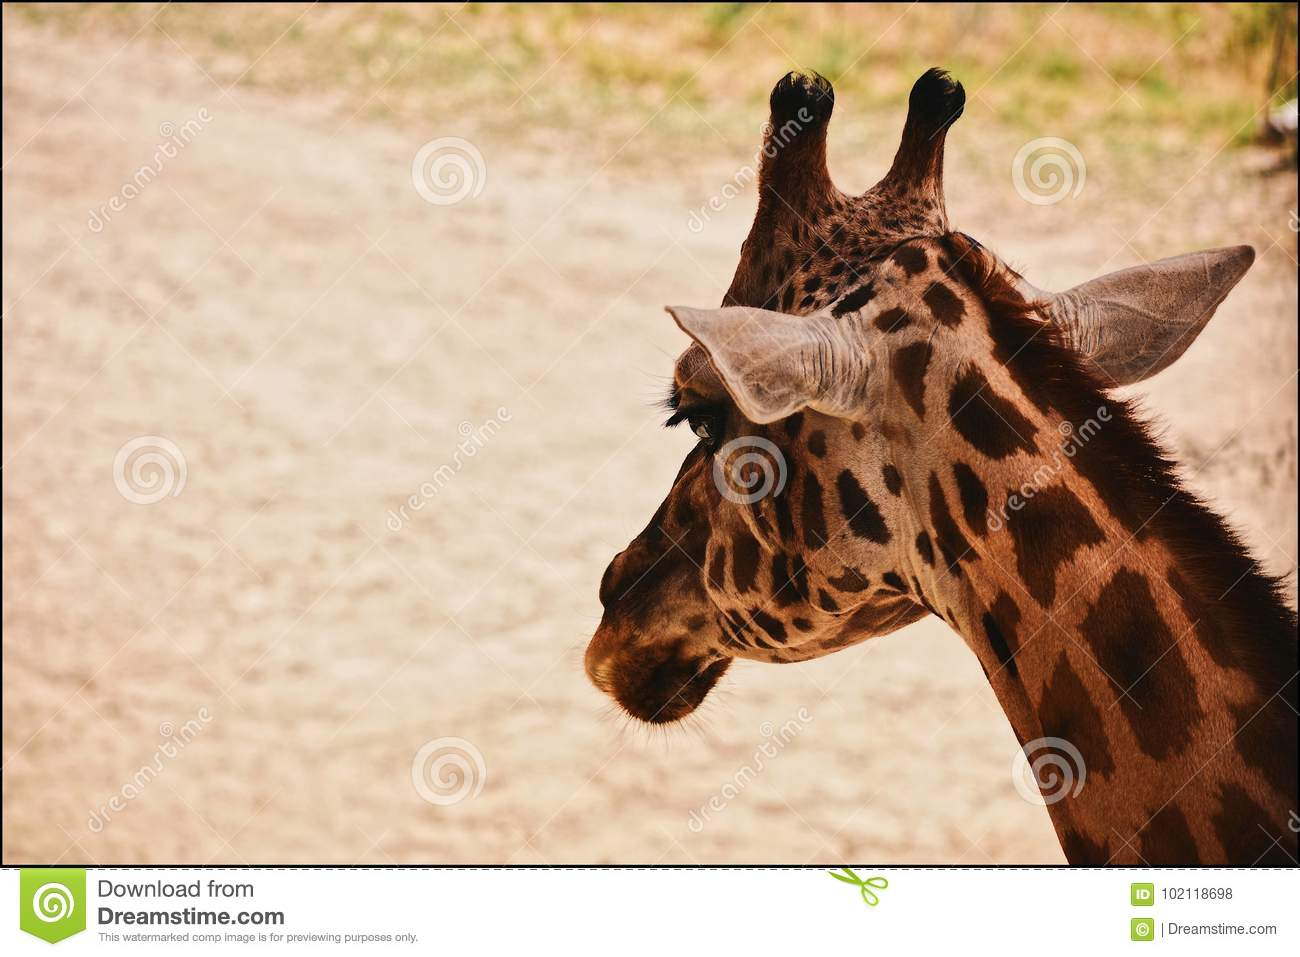 Retrato do Giraffe